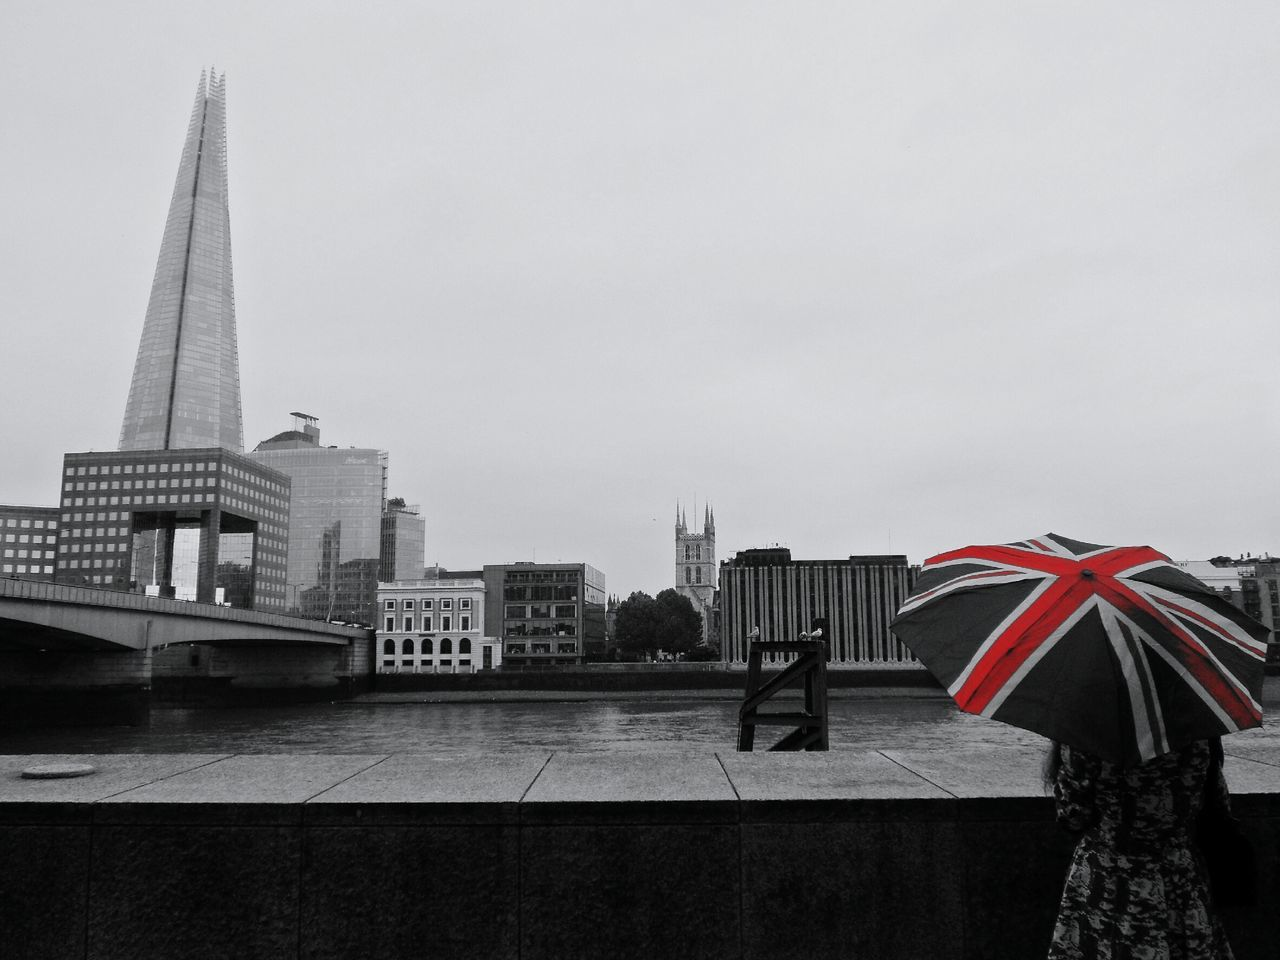 Enjoying the view Architecture Tall - High British Culture Union Jack Umbrella Woman Adults Only People Connection Outdoors Travel International Landmark Capital Cities  Travel Destinations Cityscapes Building Exterior Bridge - Man Made Structure London Incidental People River Thames Black And White City Tourism Day Showcase June